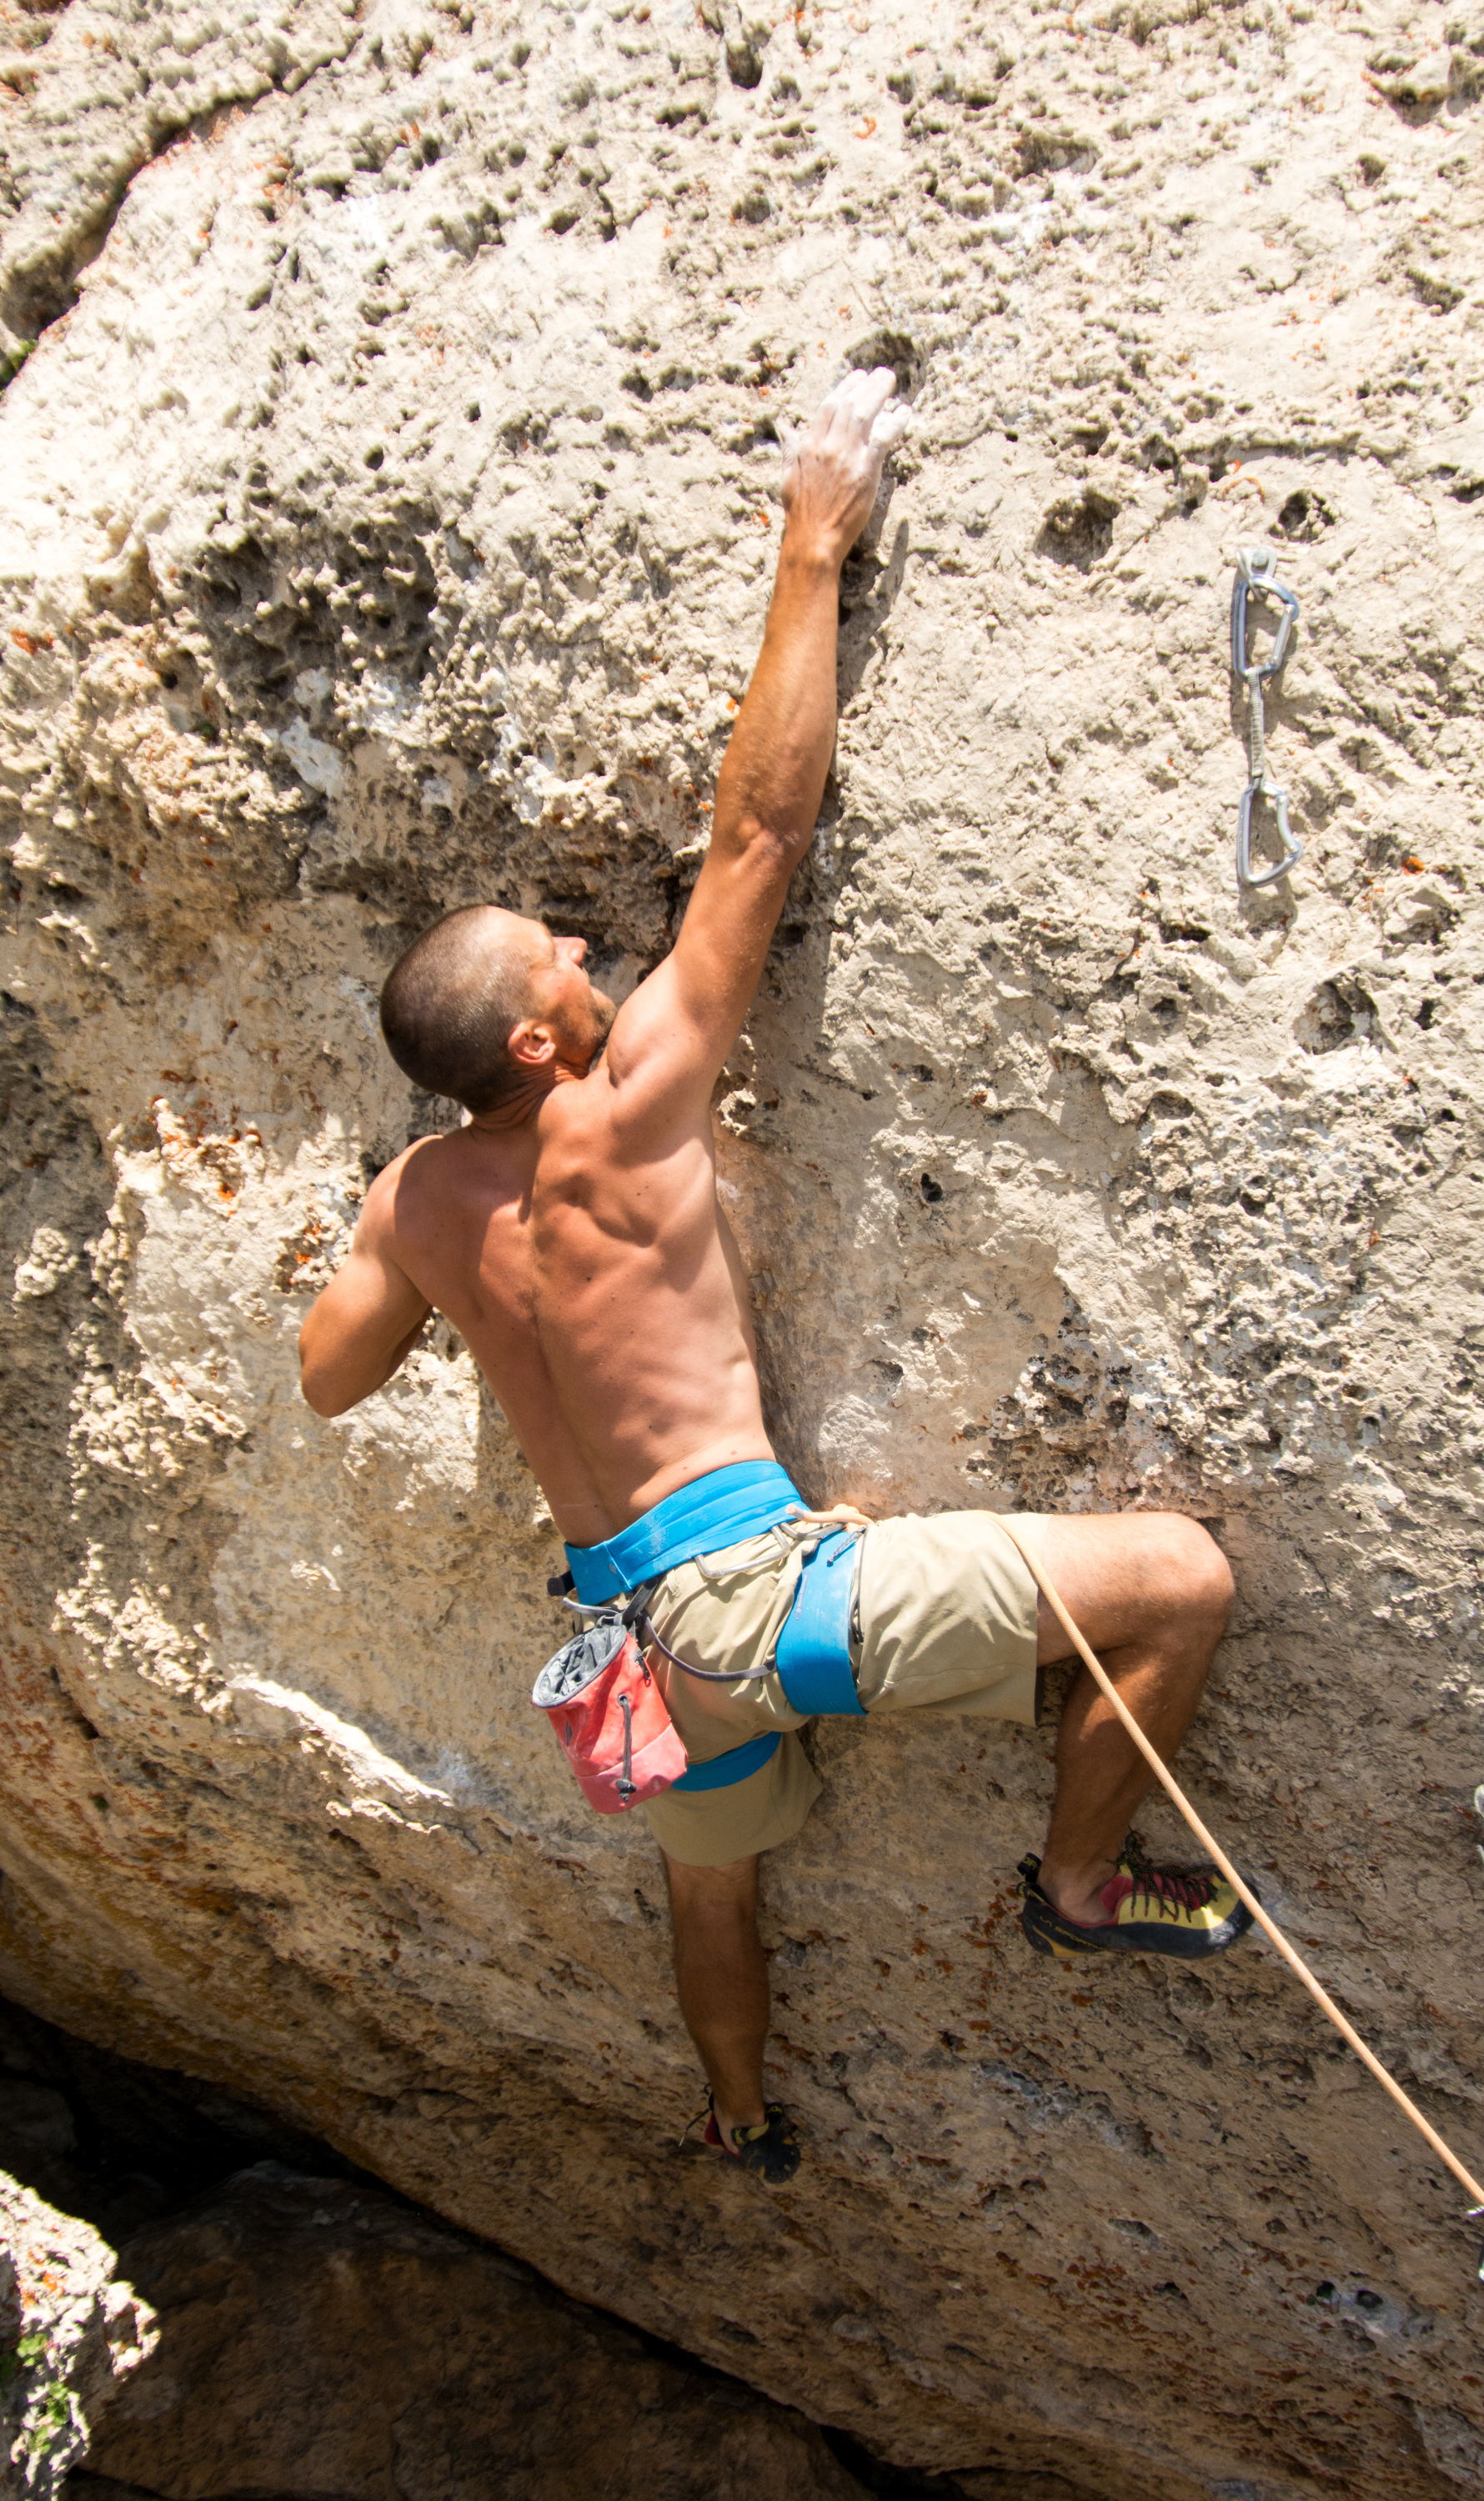 BJ Tilden climbing during the Limestone Rodeo competition